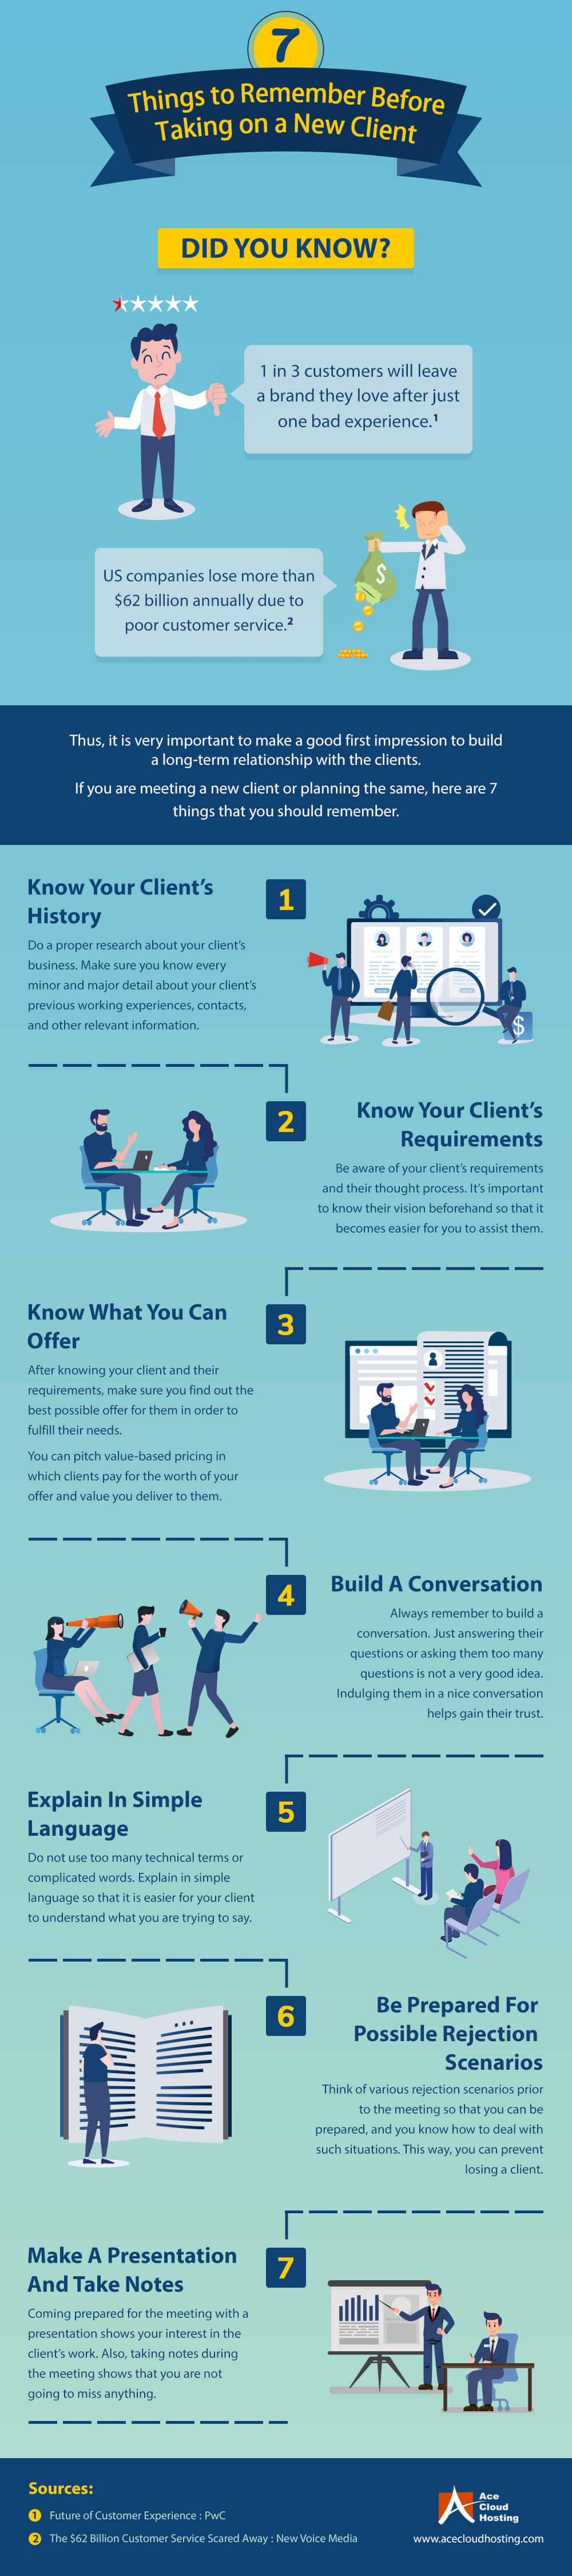 7 Things to Remember Before Taking on a New Client [Infographic]